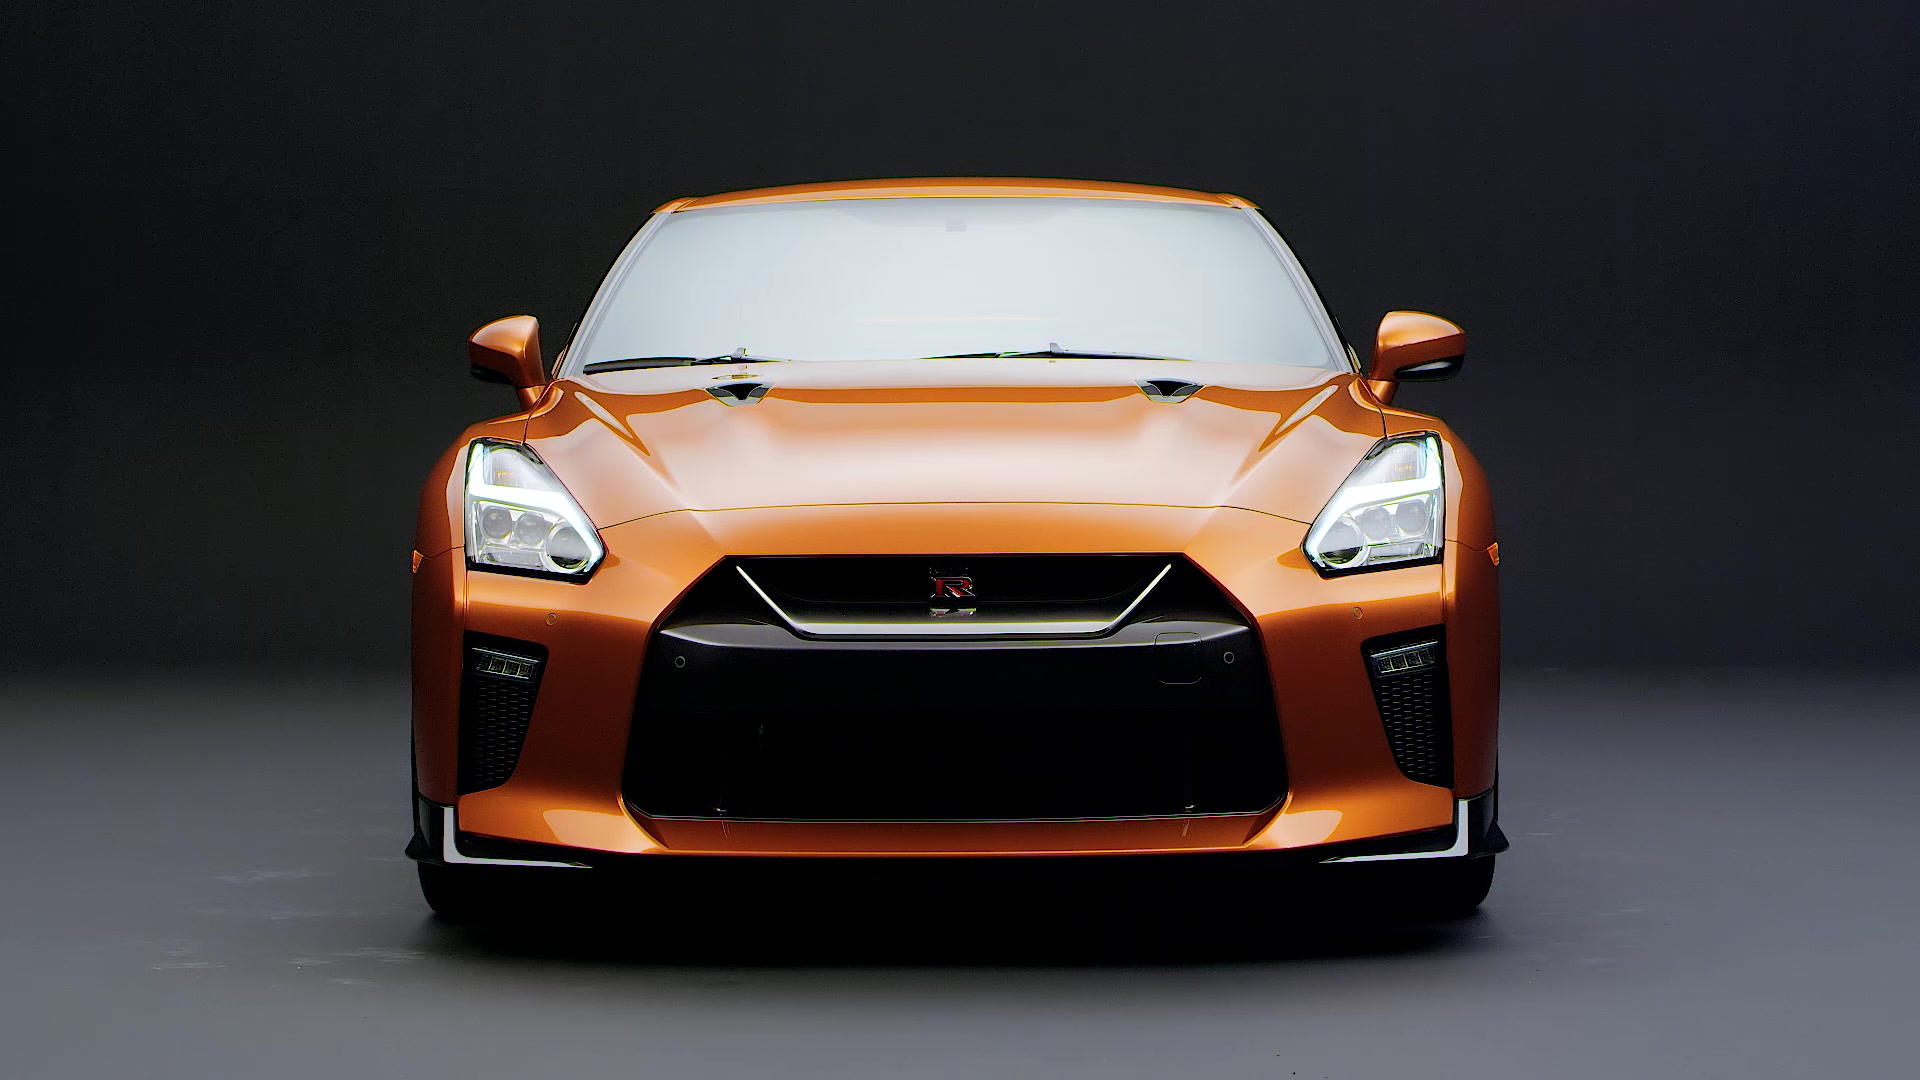 Nissan Gt R 2017 Us Wallpapers And Hd Images: 2017 Nissan GT-R Makes World Debut At New York